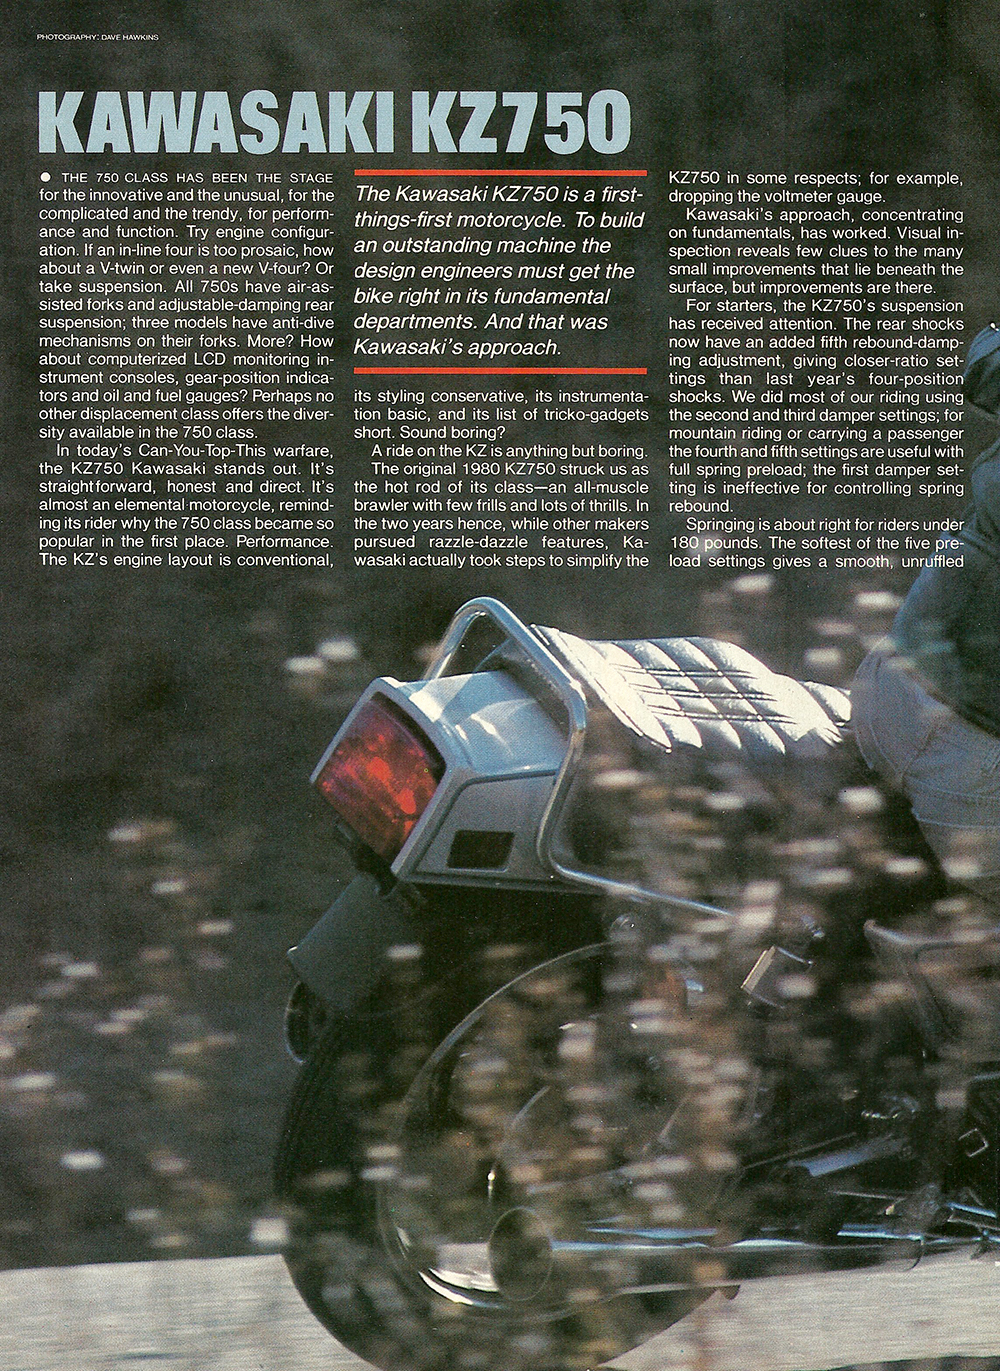 1982 Kawasaki kz750 road test 01.JPG